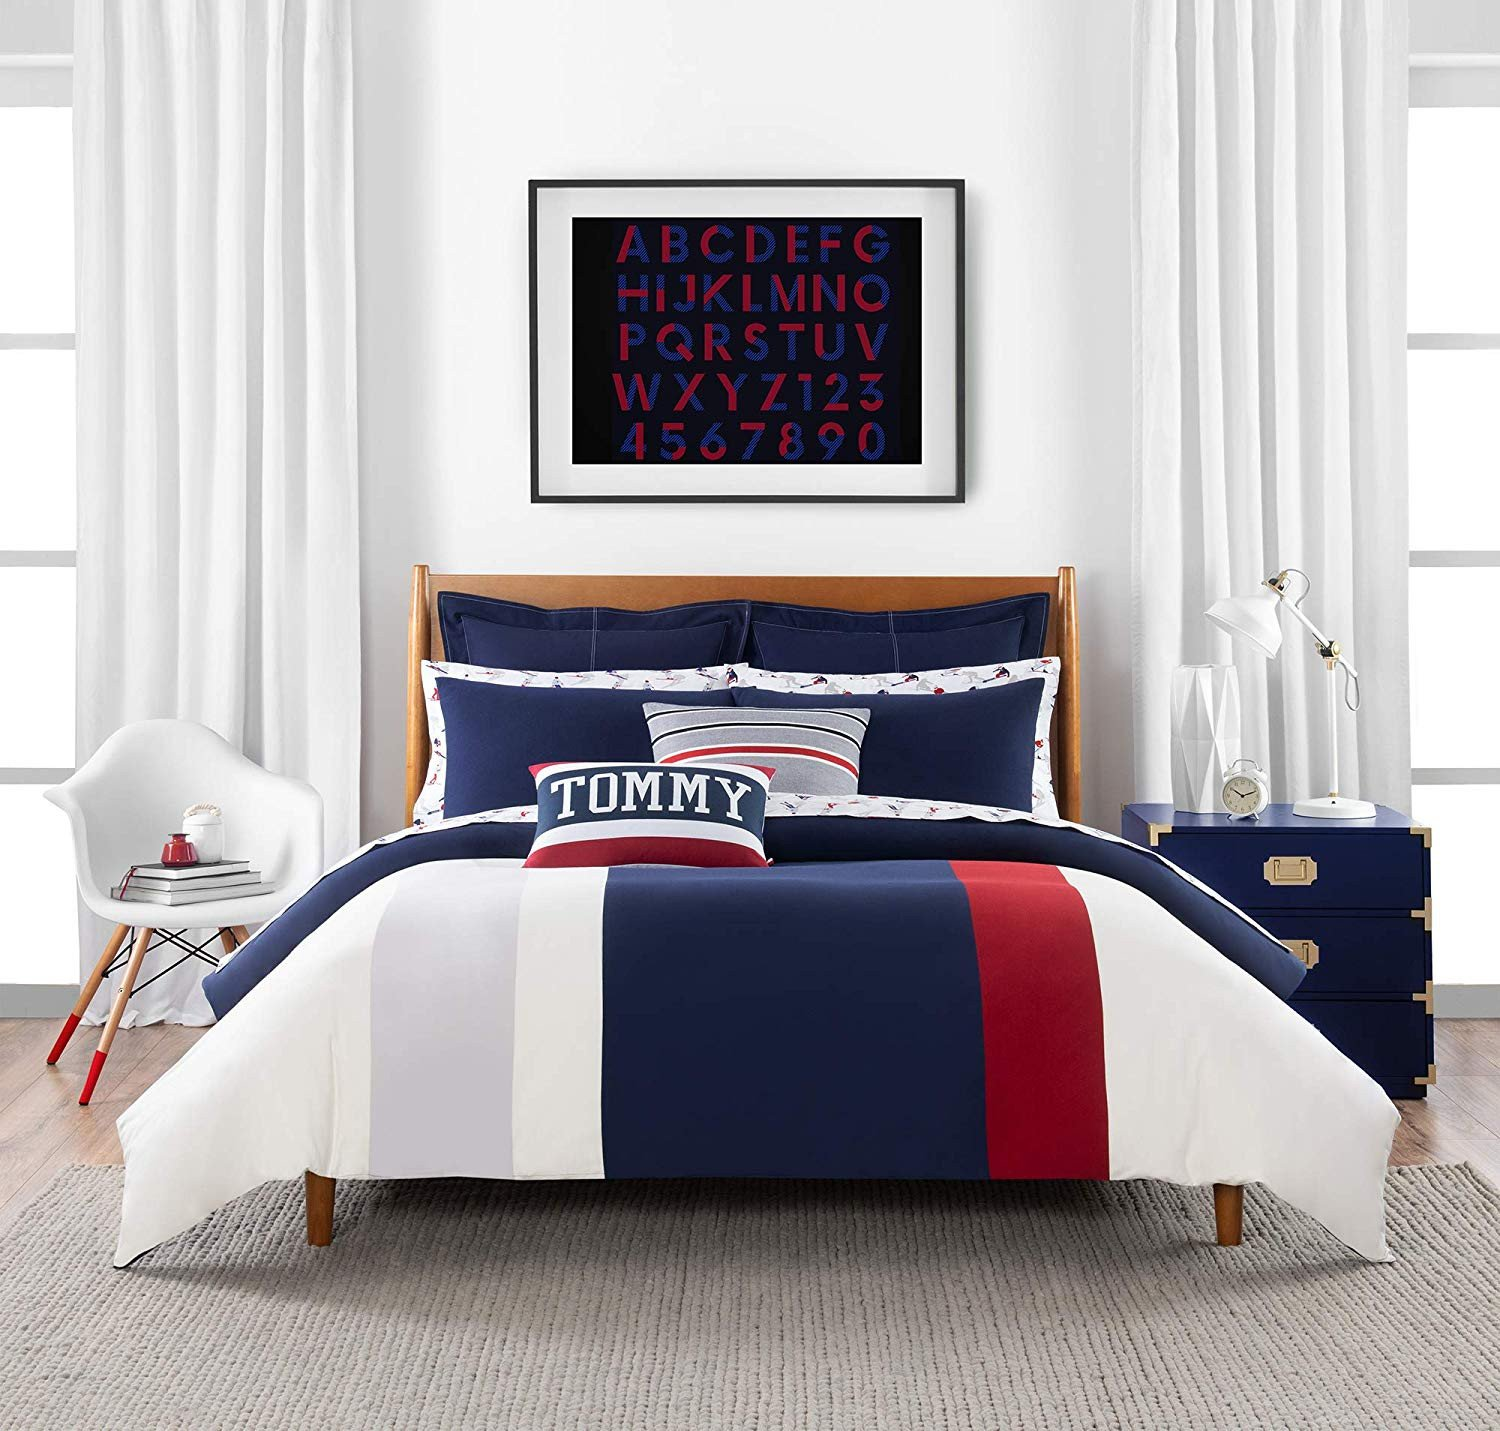 Rooms to Go Full Bedroom Set Inspirational Amazon tommy Hilfiger Clash Of 85 Stripe Bedding